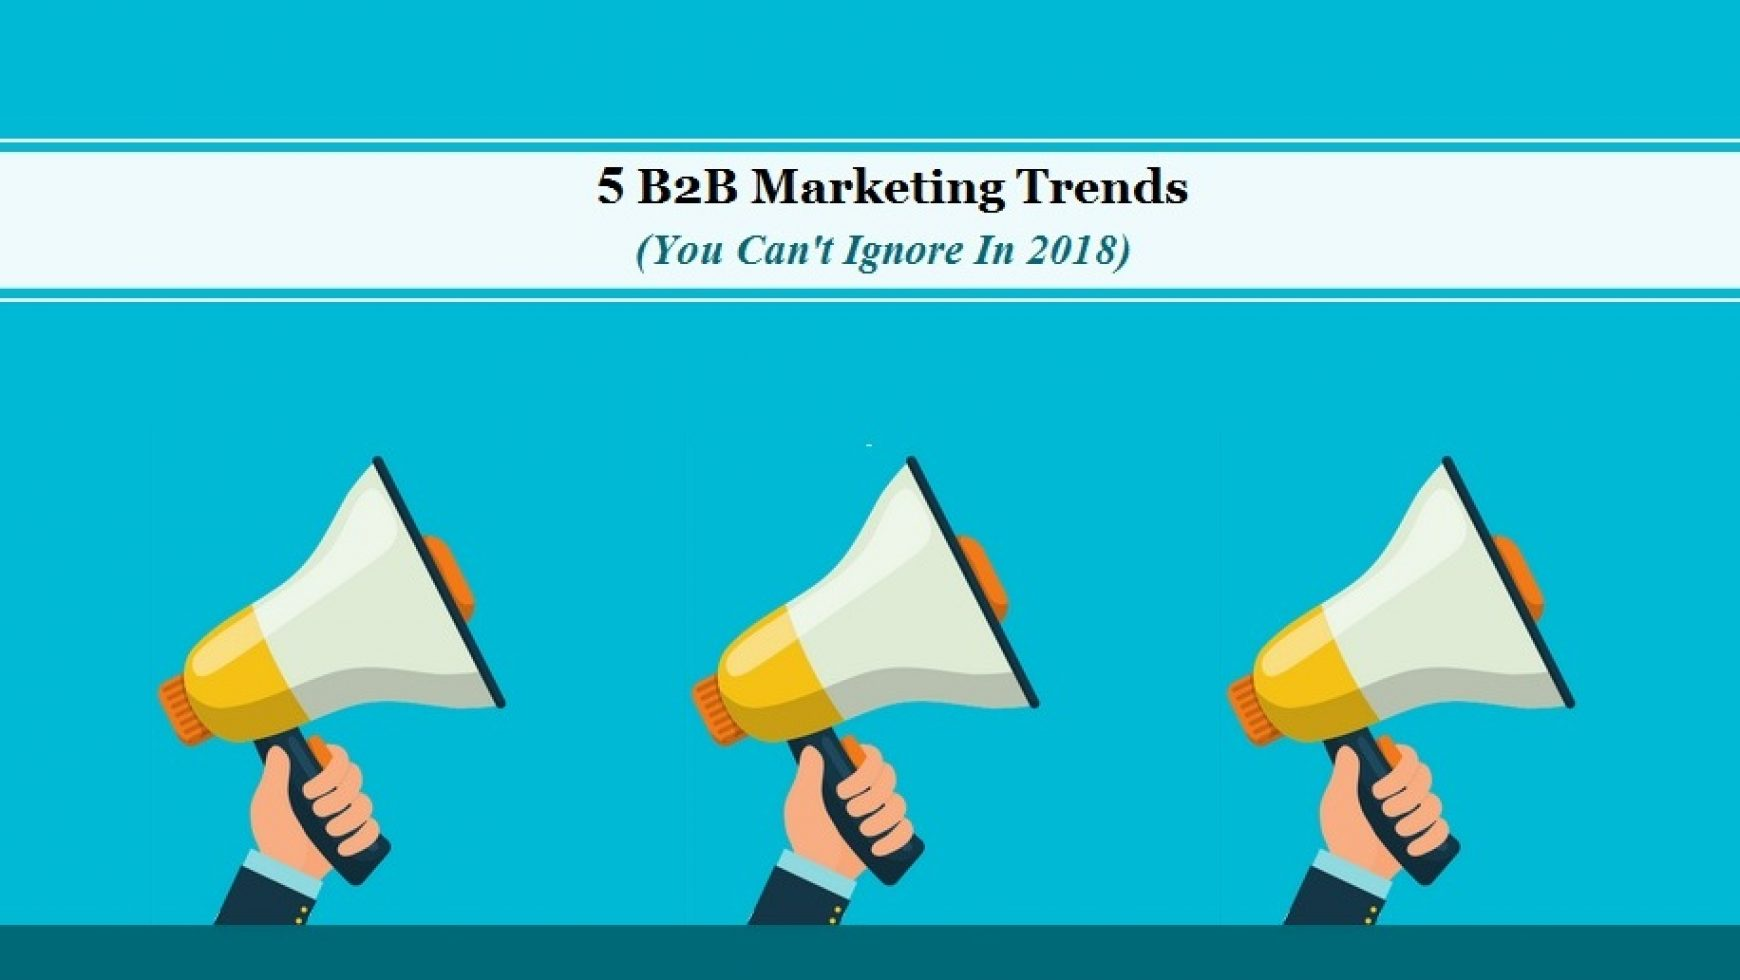 5 B2B Marketing Trends You Can't Ignore In 2018